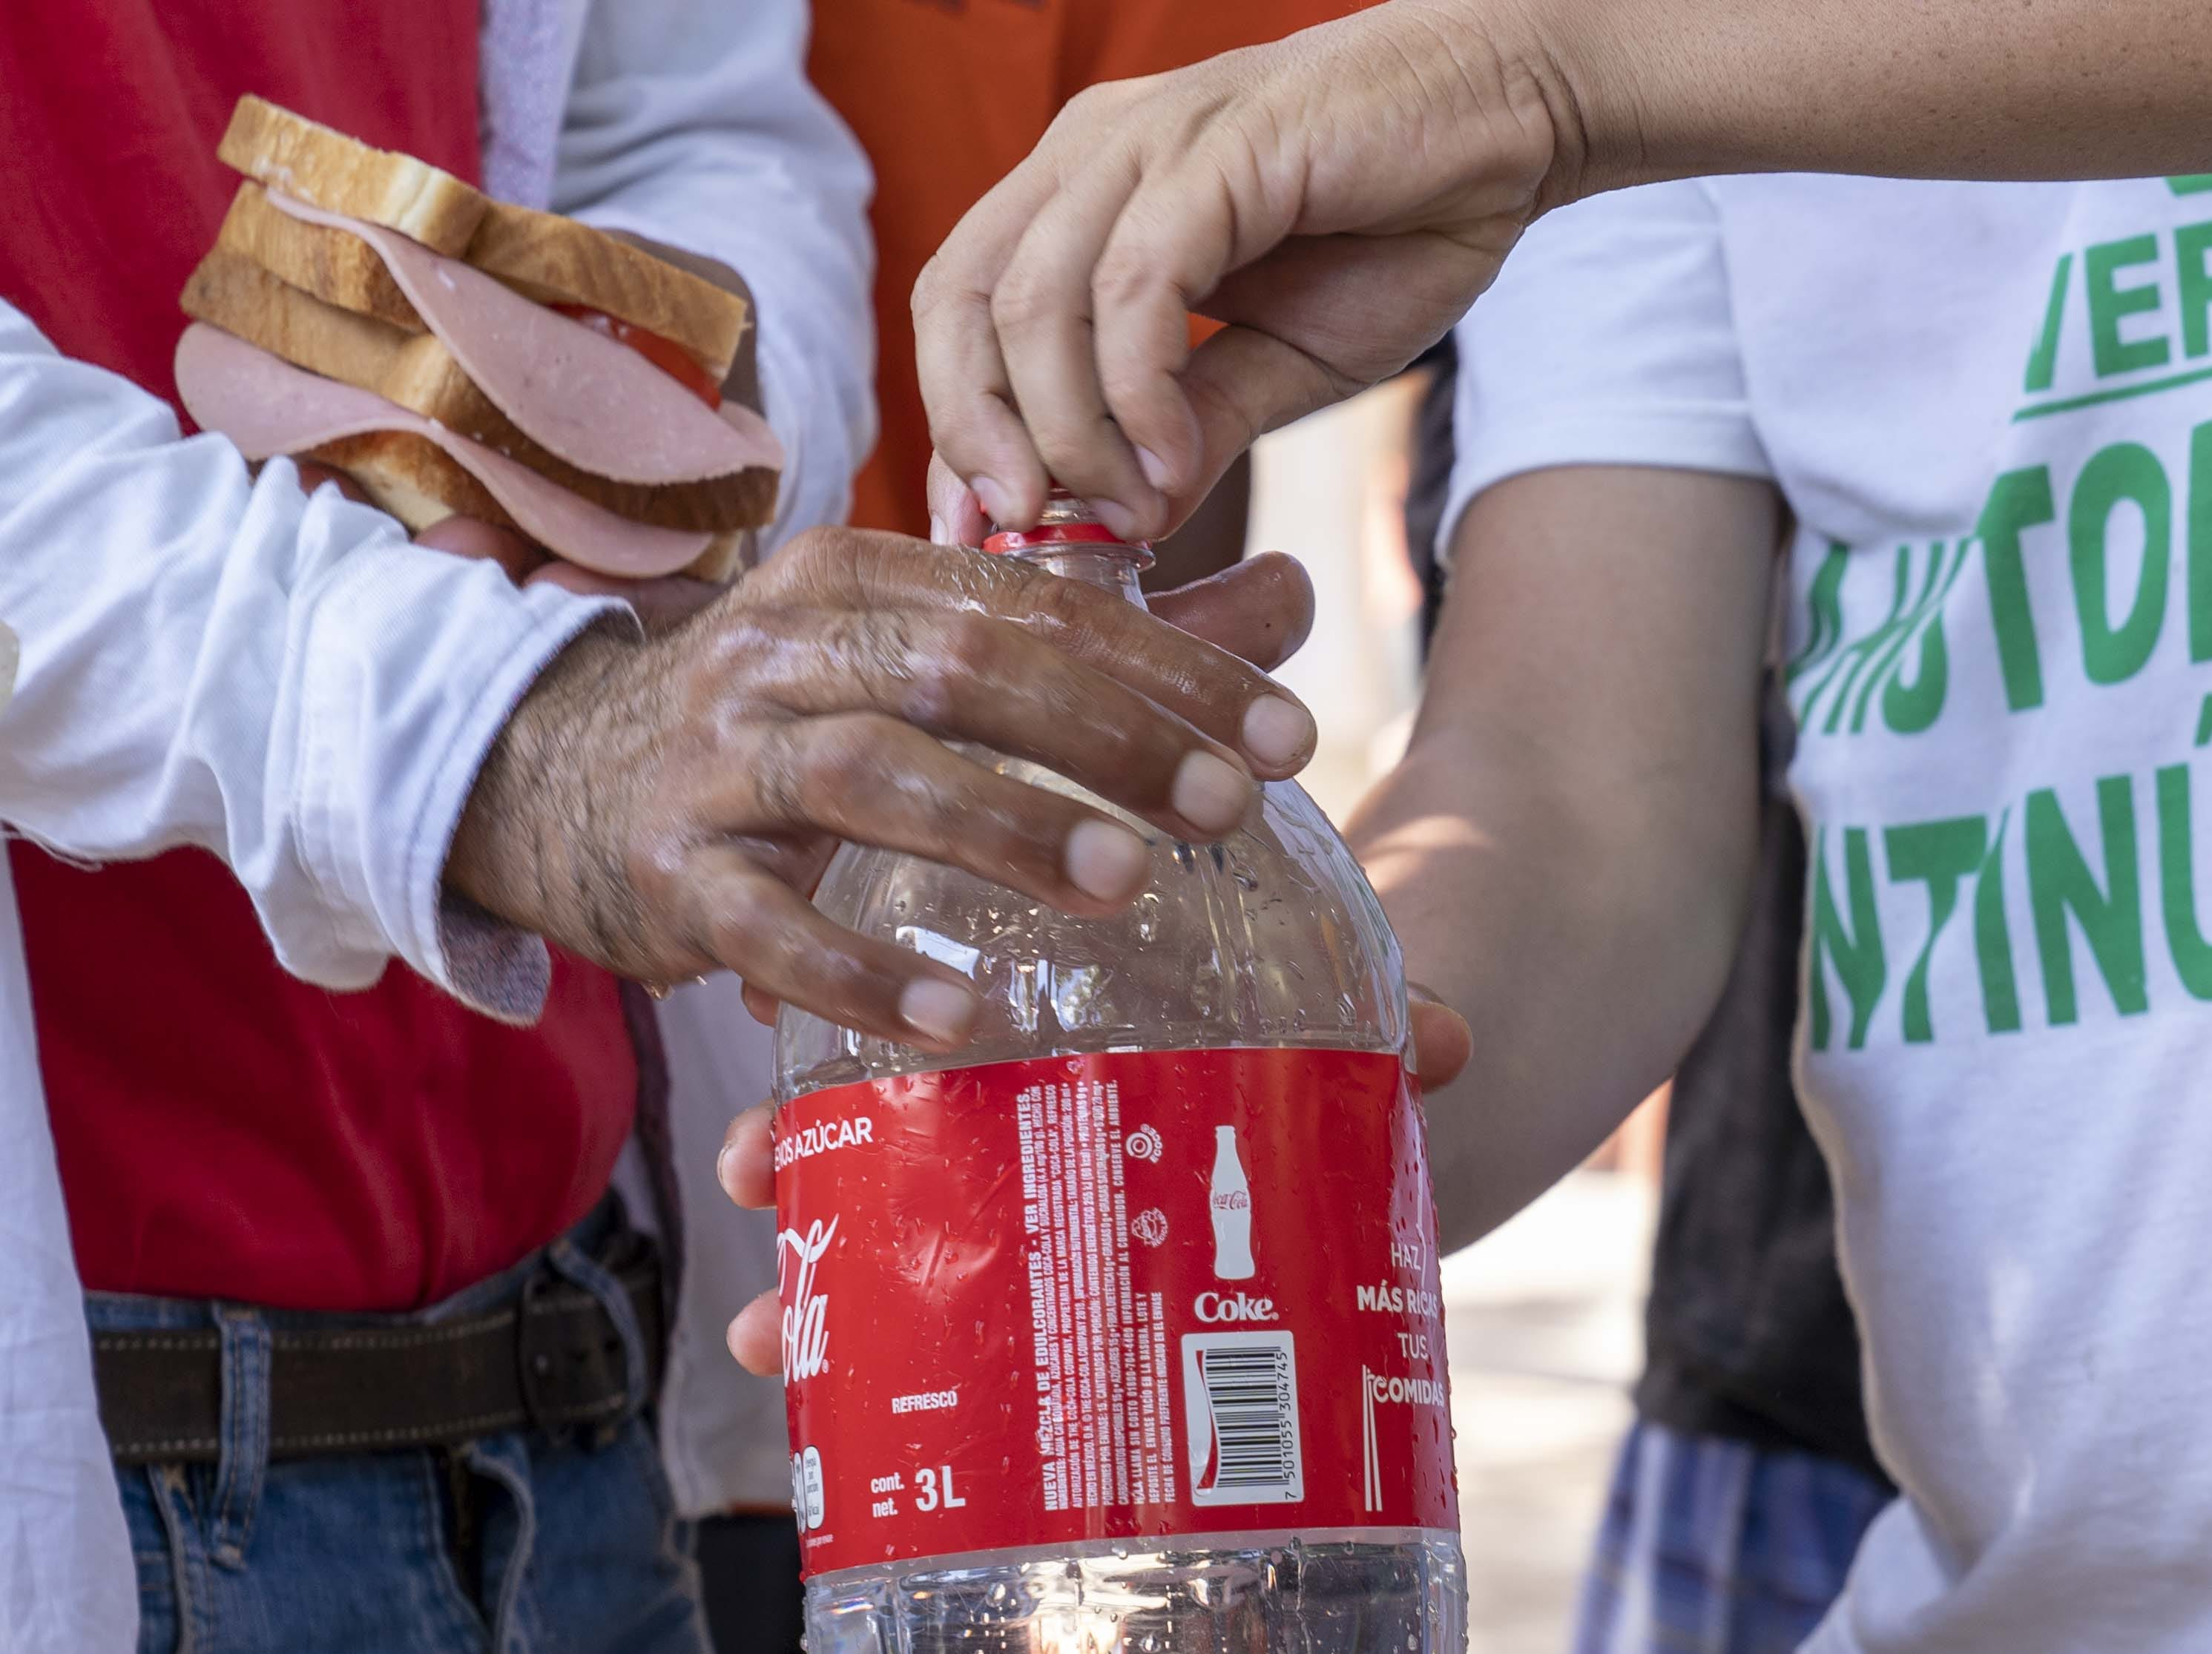 Migrants feeling water in a coke bottle. The thousands of migrants from Honduras and other Central American countries traveling in a huge caravan toward the U.S. took a day off to rest on Sunday, Oct. 28, 2018.